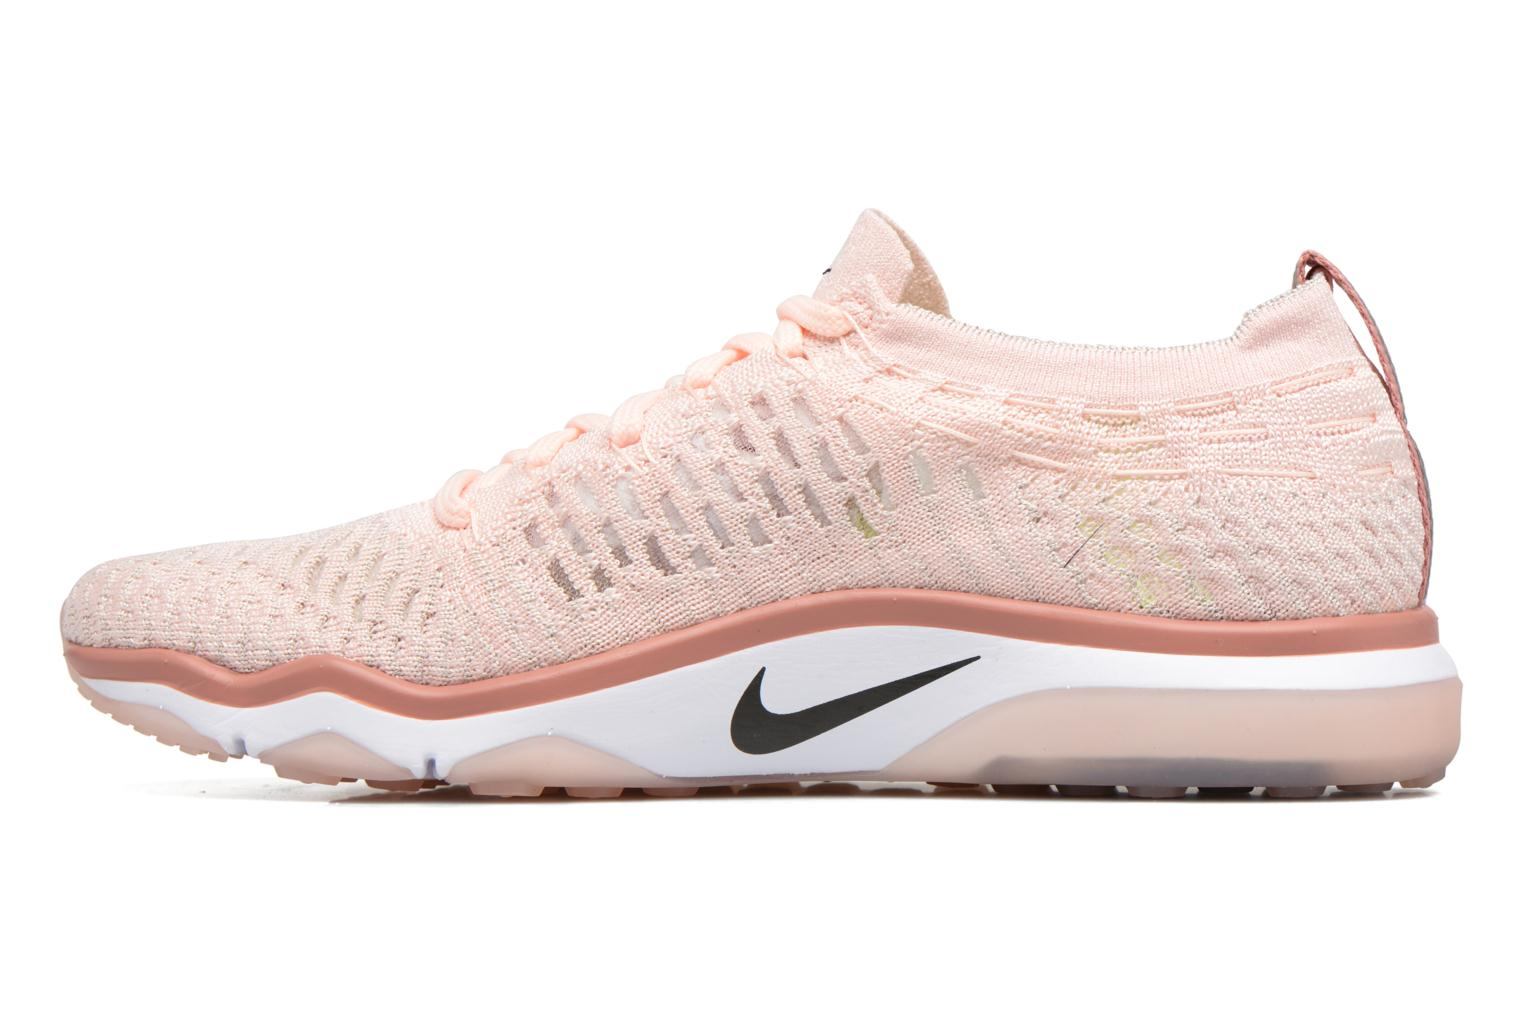 Chaussures de sport Nike W Air Zoom Fearless Fk Bionic Rose vue face